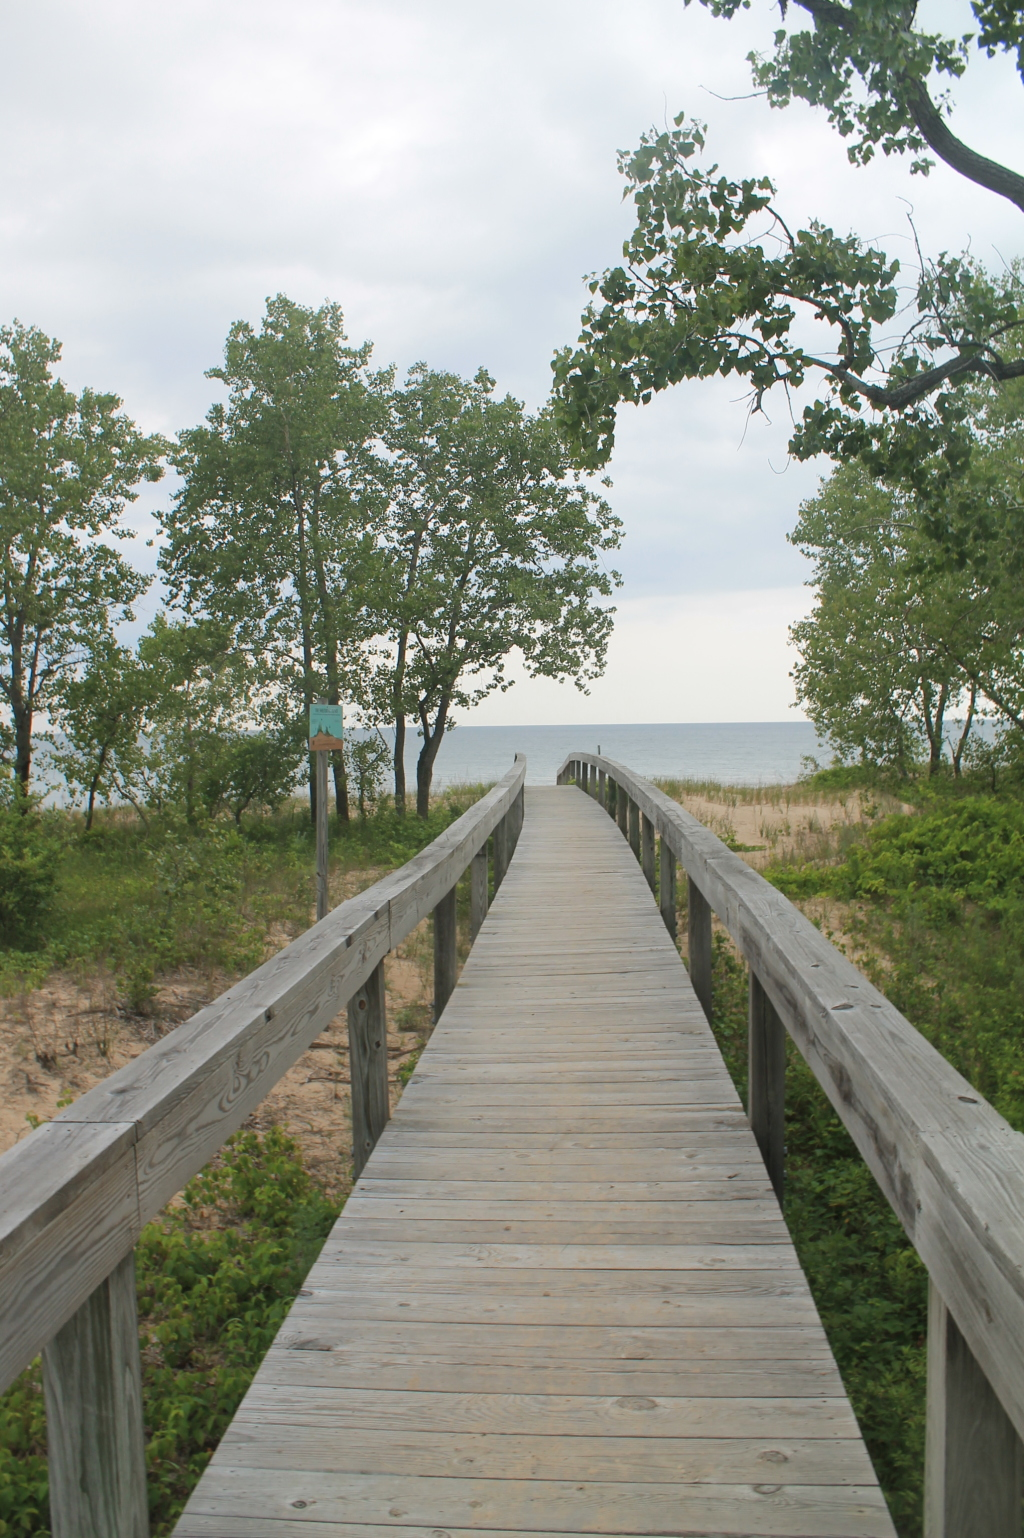 Photo: Boardwalk